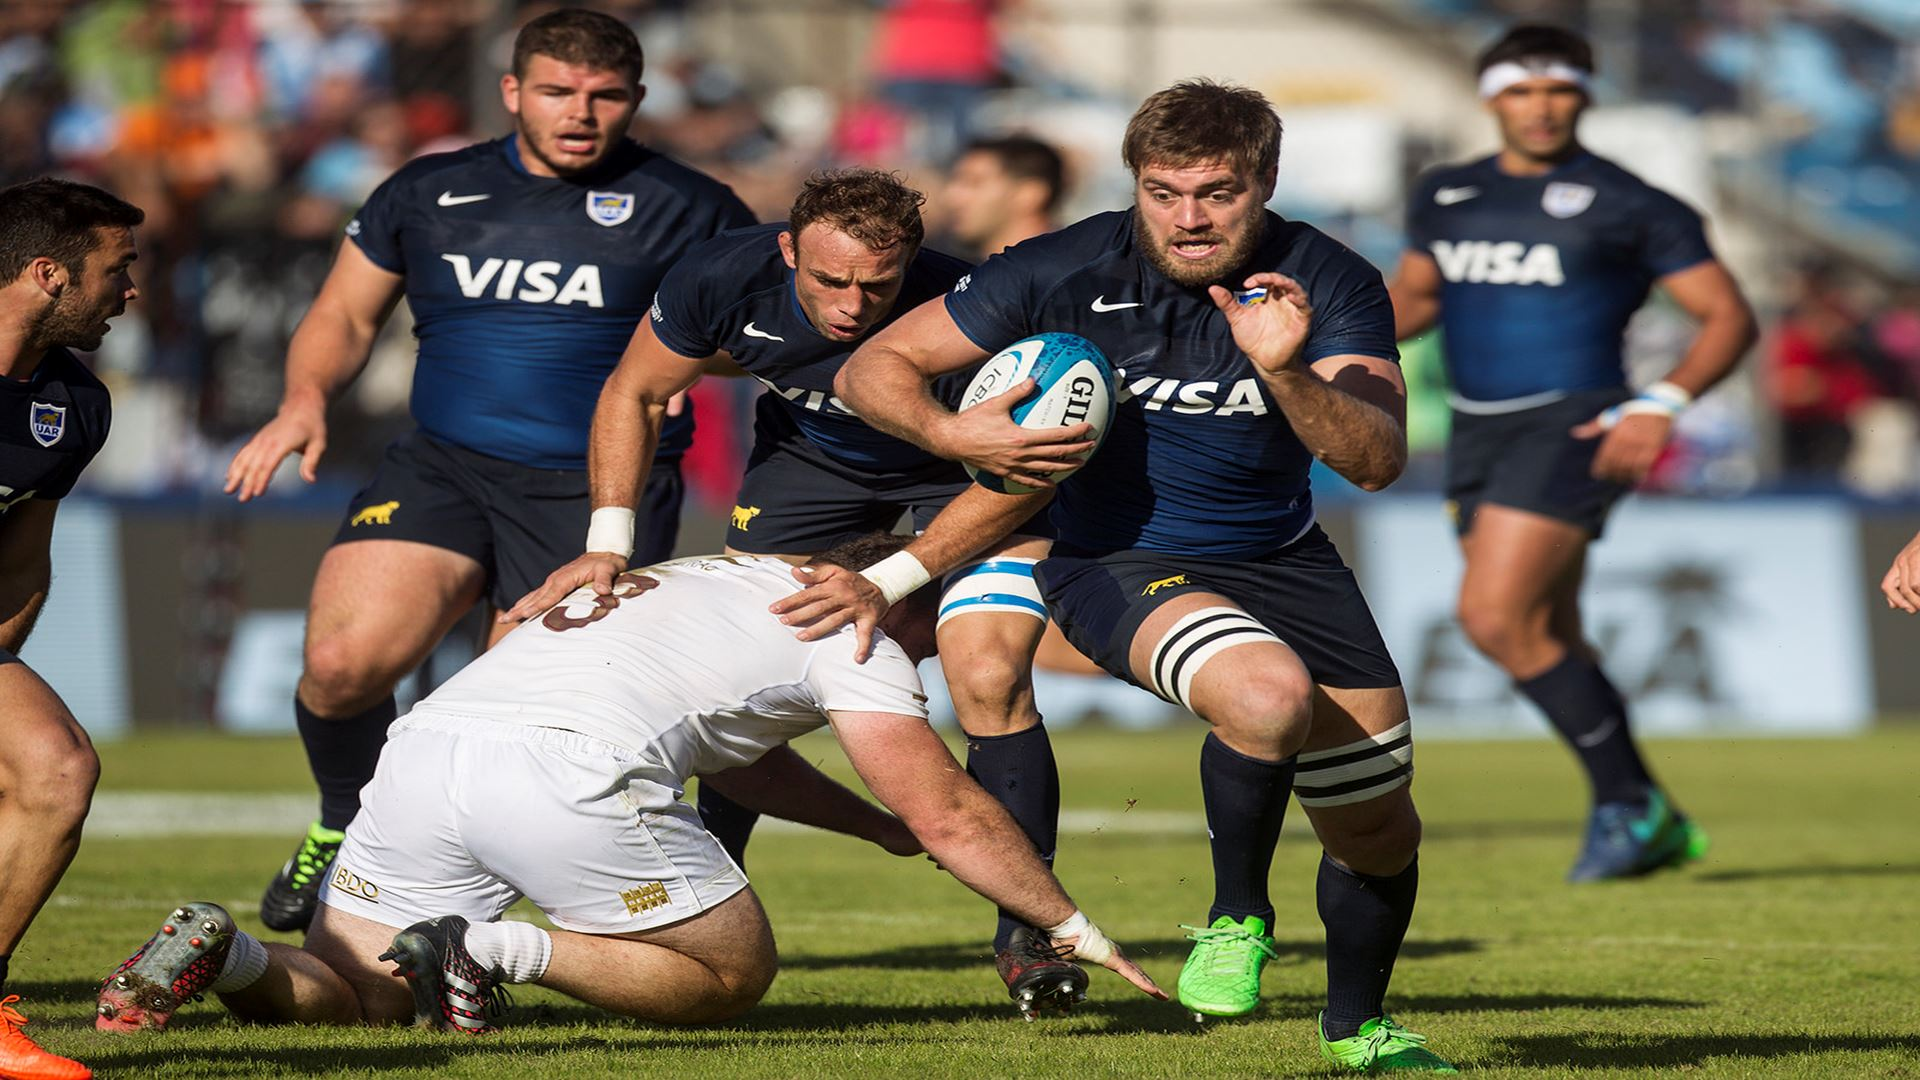 Tours And Tickets For Rugby Games In Argentina